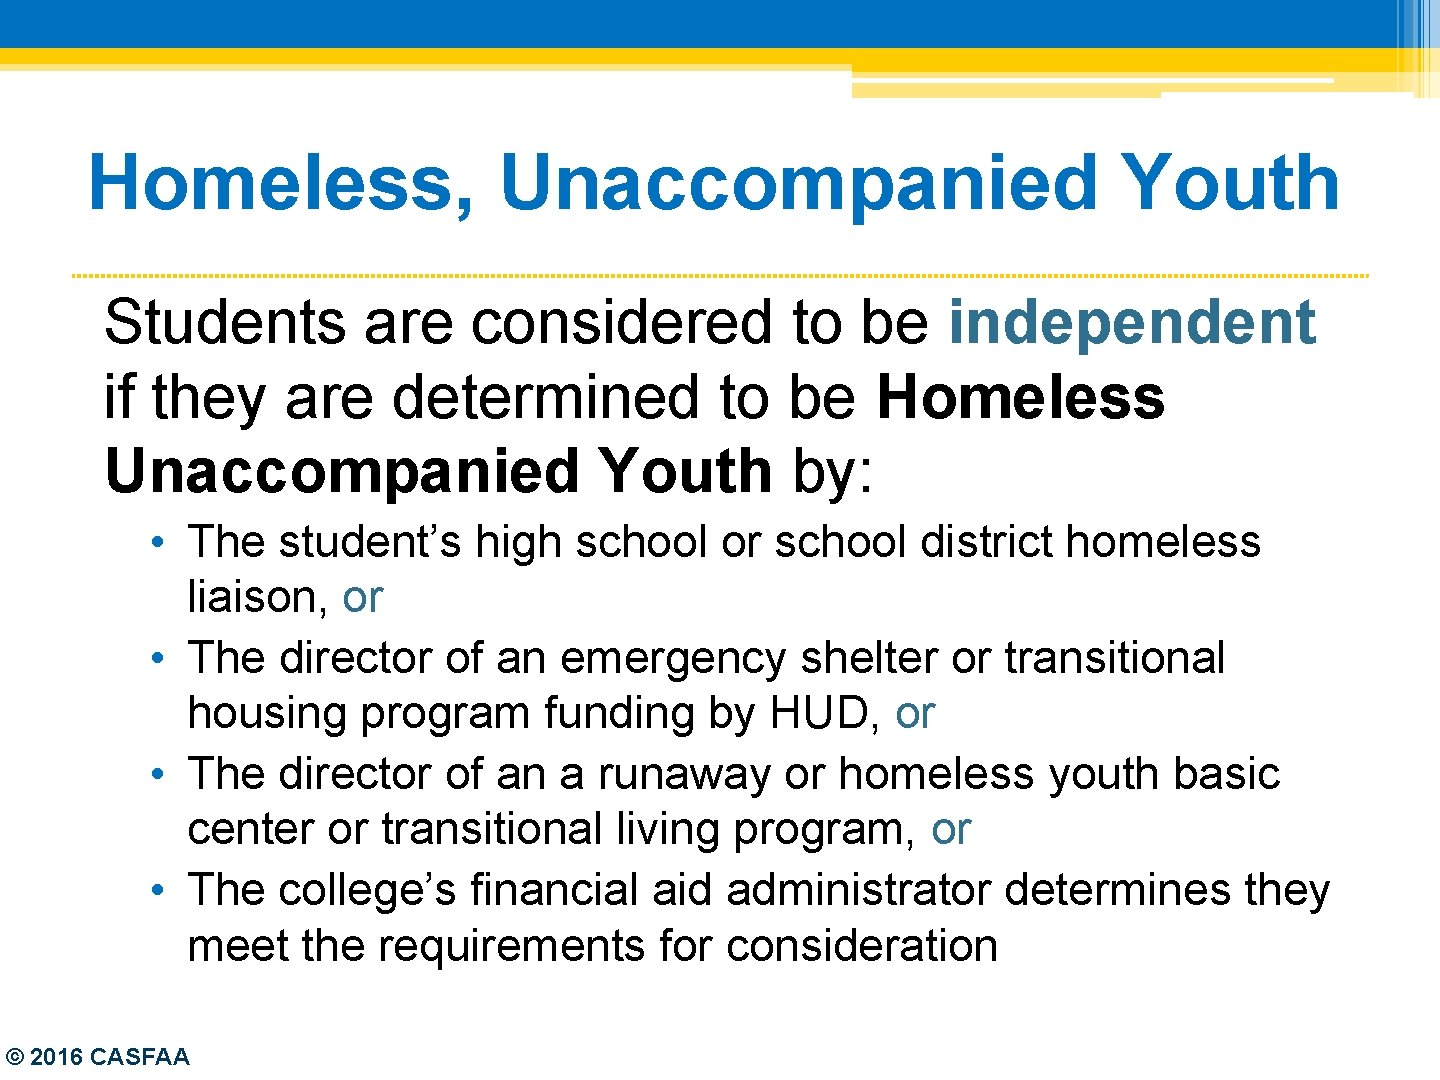 Homeless, Unaccompanied Youth Students are considered to be independent if they are determined to